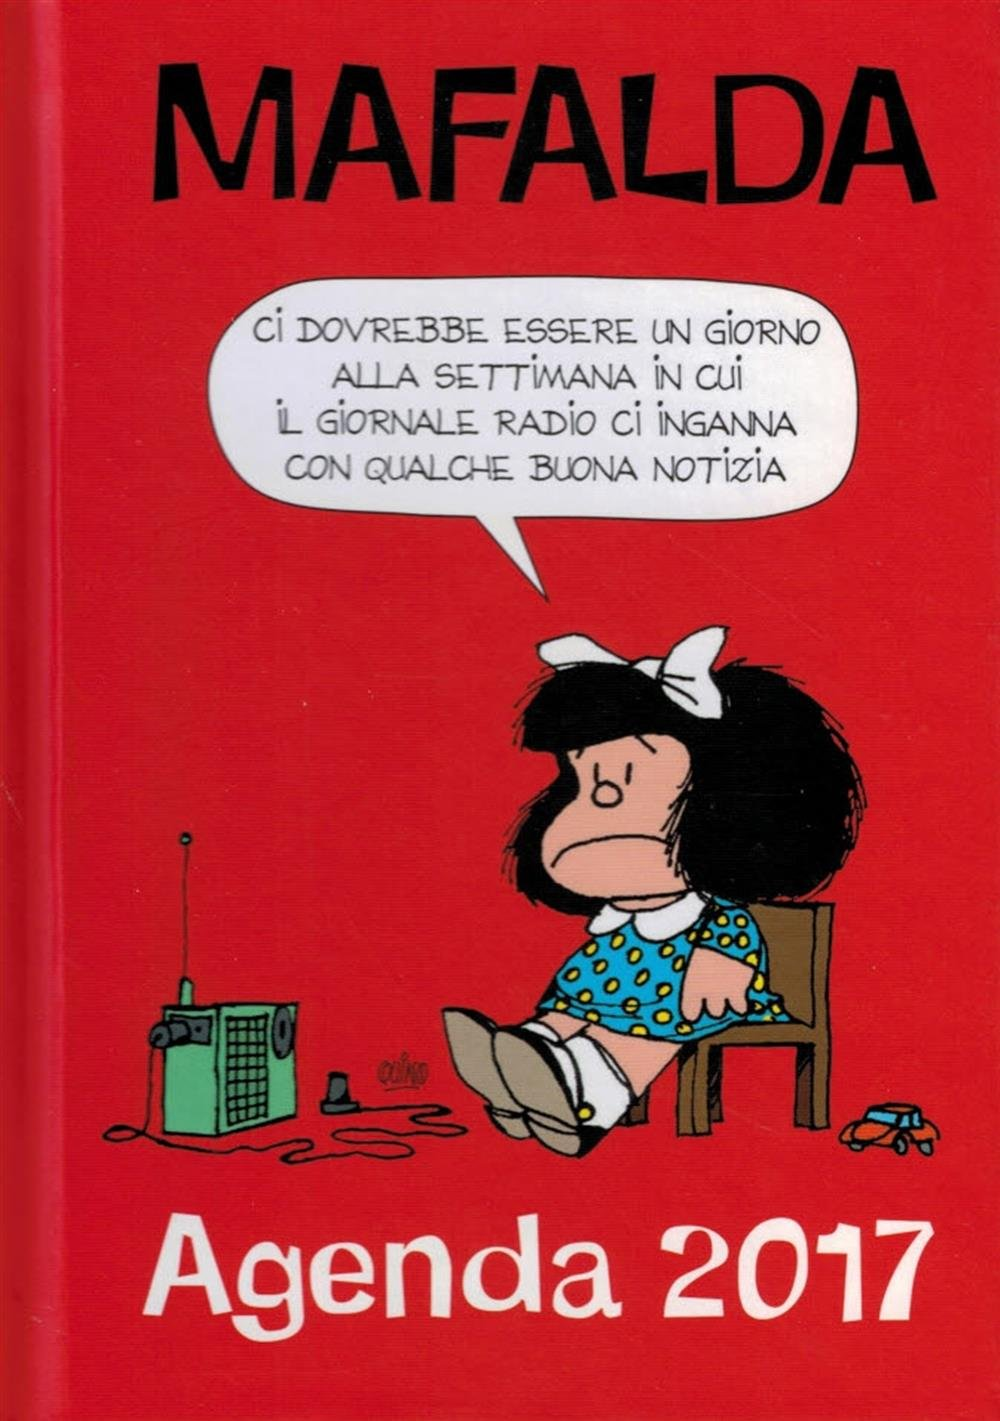 Mafalda - Agenda 2017: AA. VV.: 9788868218799: Amazon.com: Books